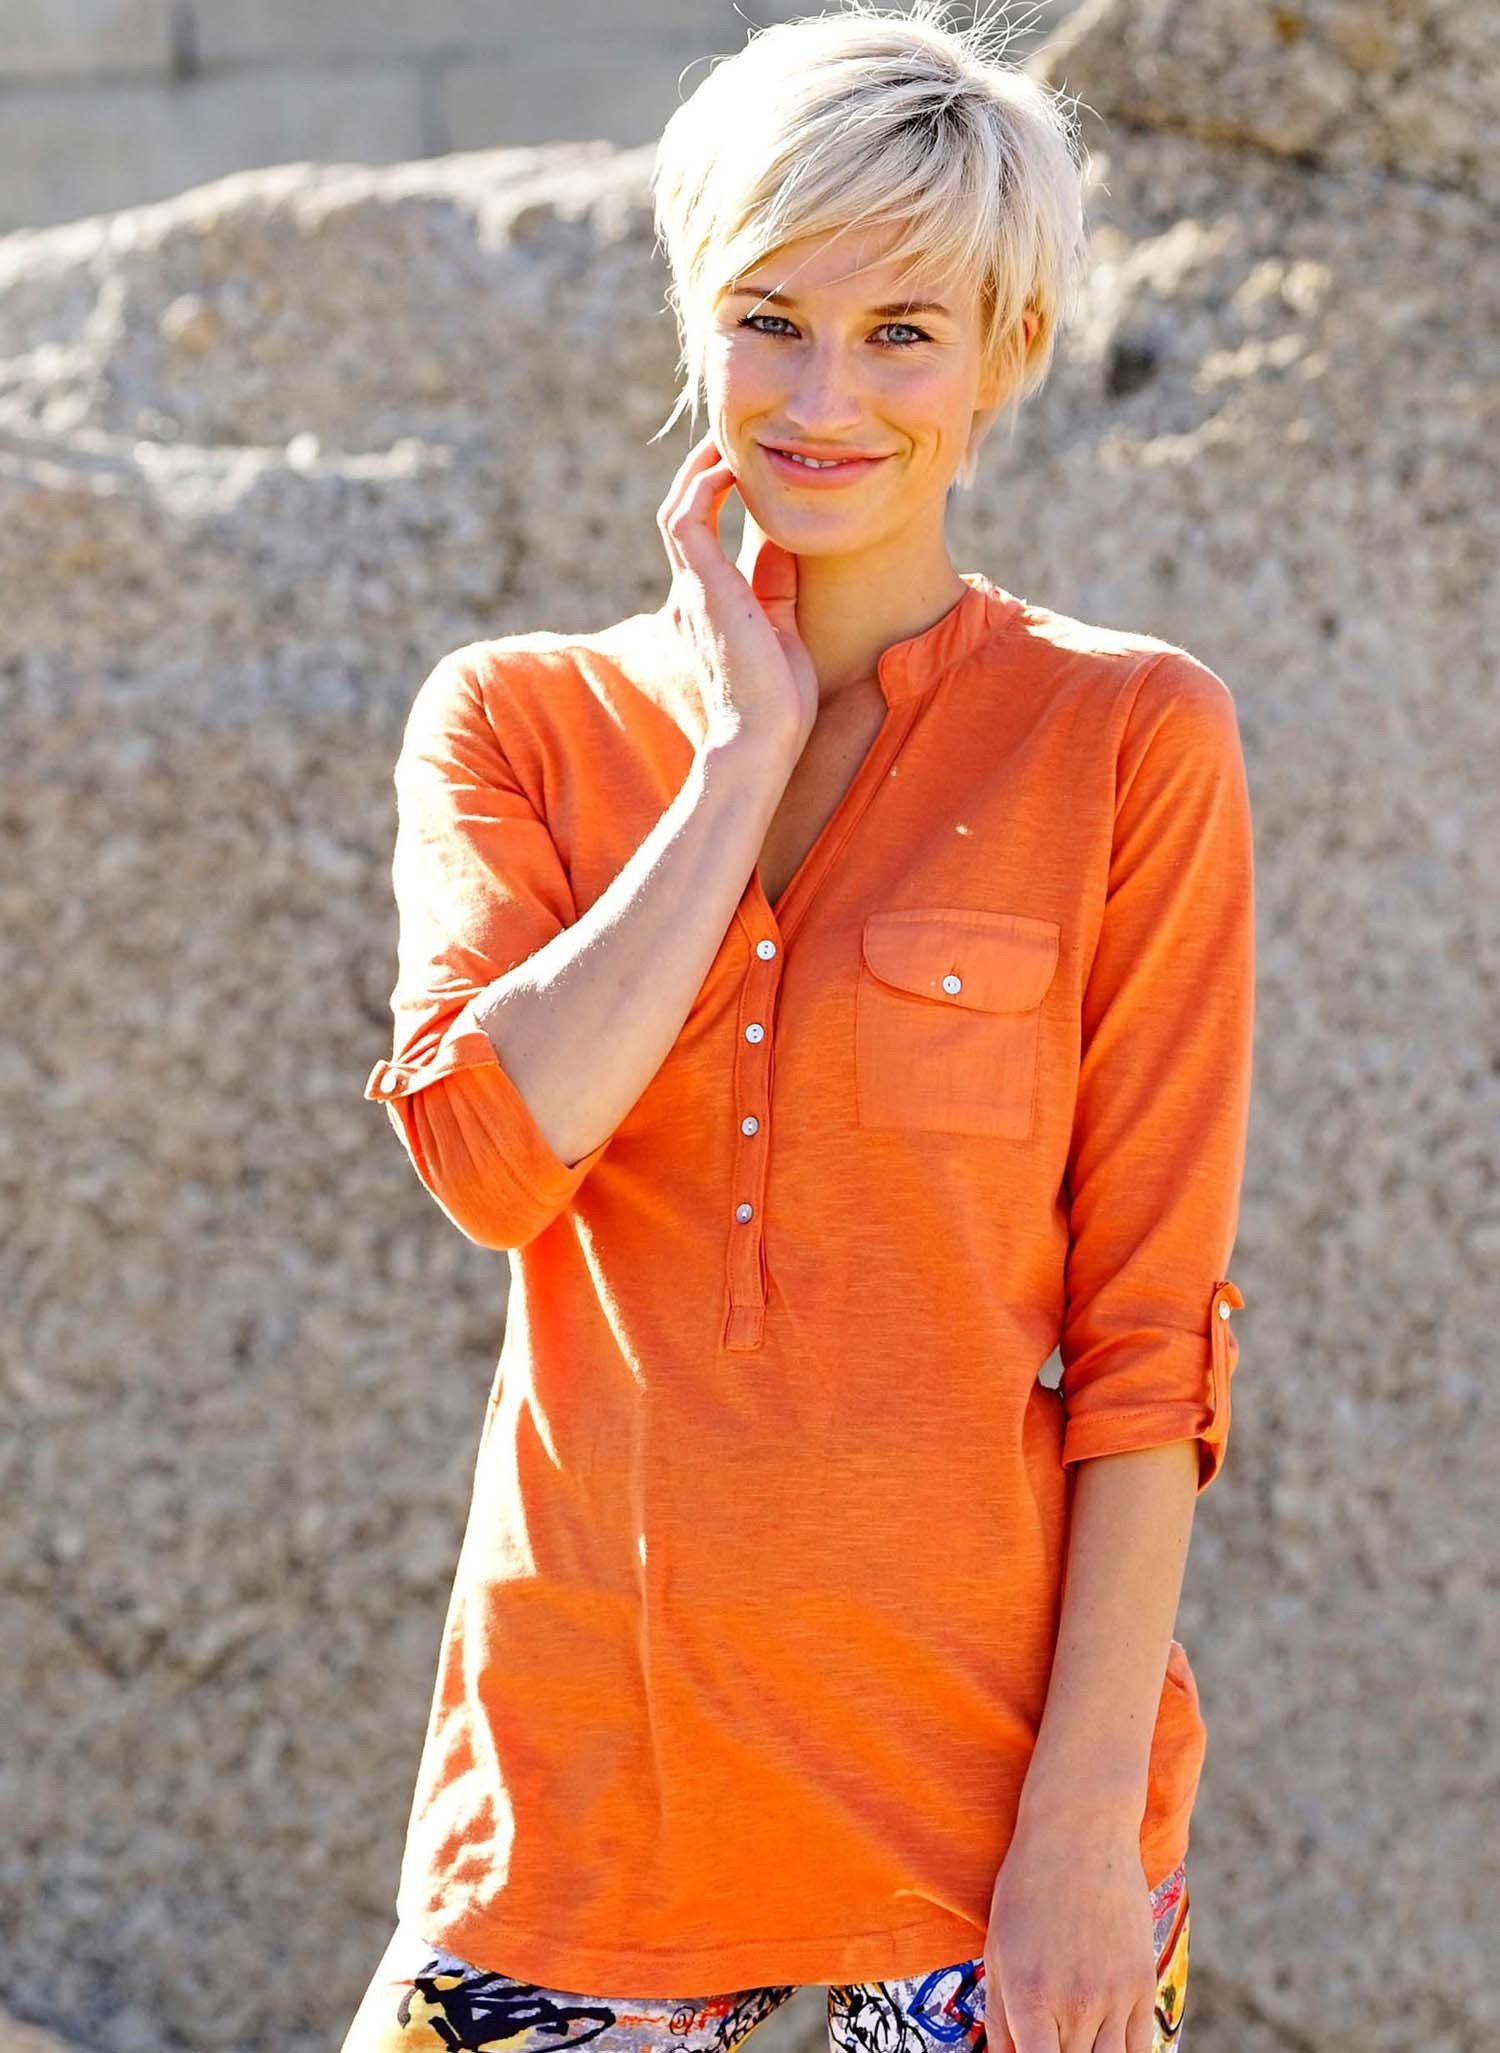 D-Long-Top,im.Ledergurt orange S 022 - 1 - Ronja.ch